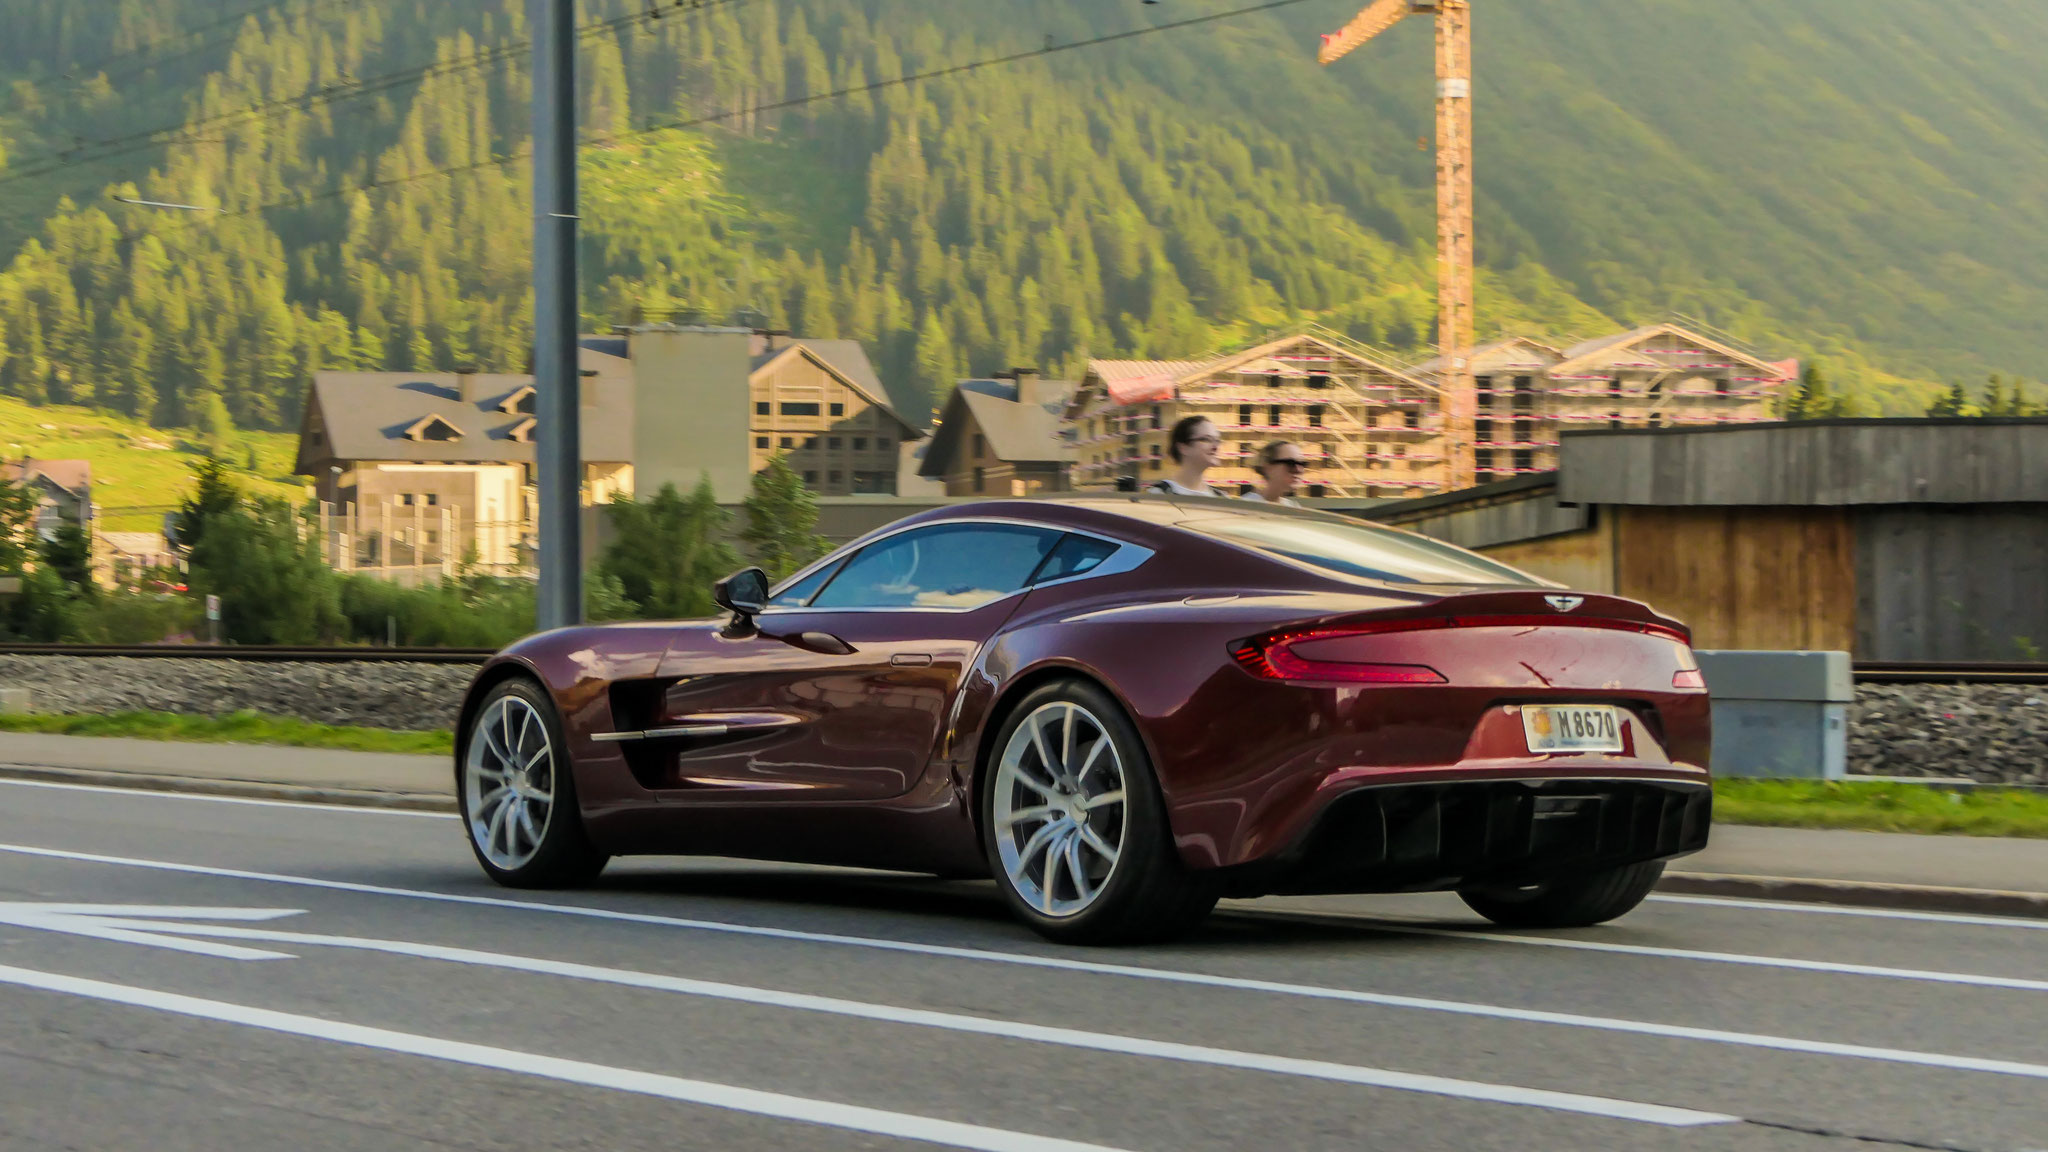 Aston Martin One-77 - M8670 (AND)